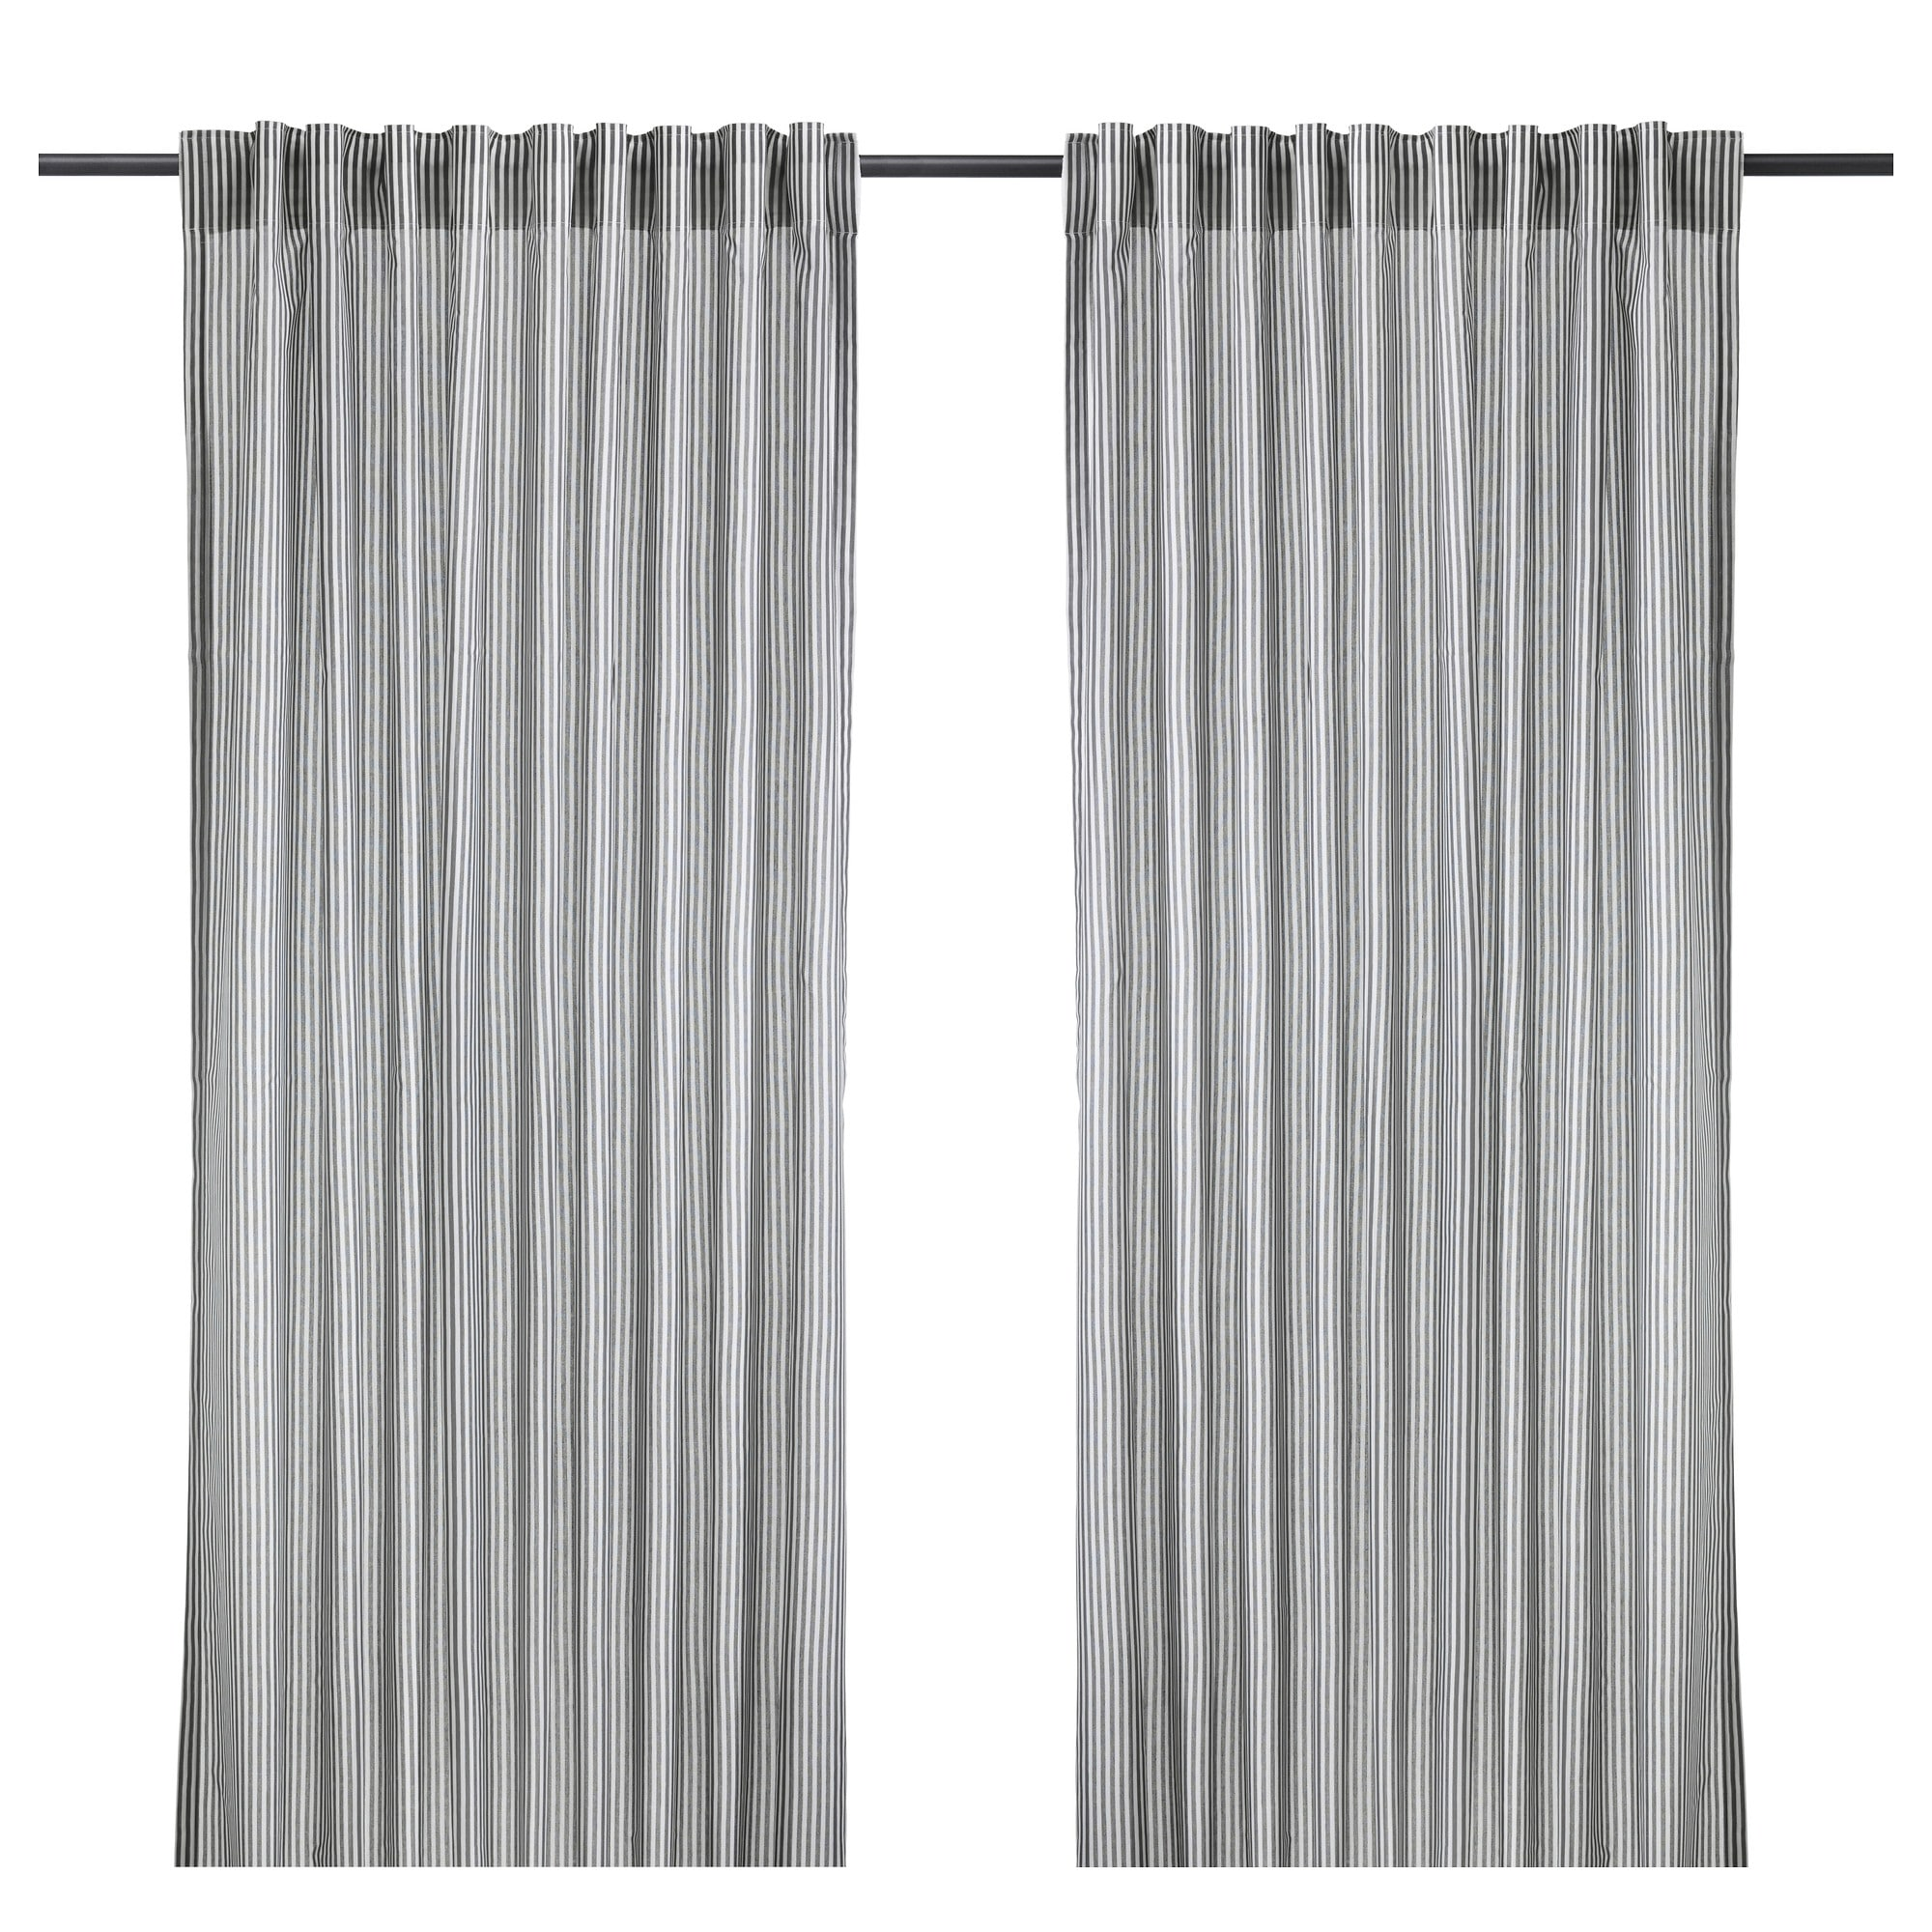 Kelly green velvet curtains - Gulsporre Curtains 1 Pair White Gray Length 98 Width 57